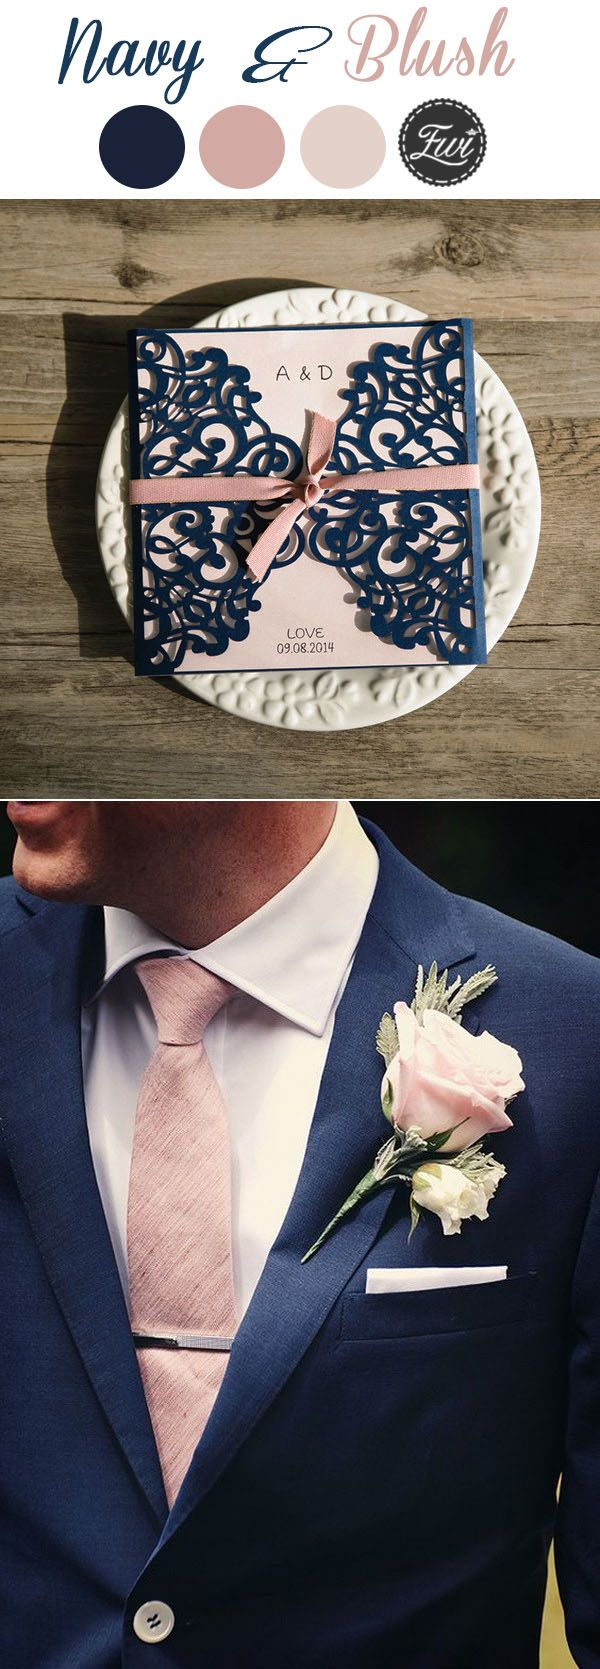 classic navy blue and dusty pink wedding color ideas